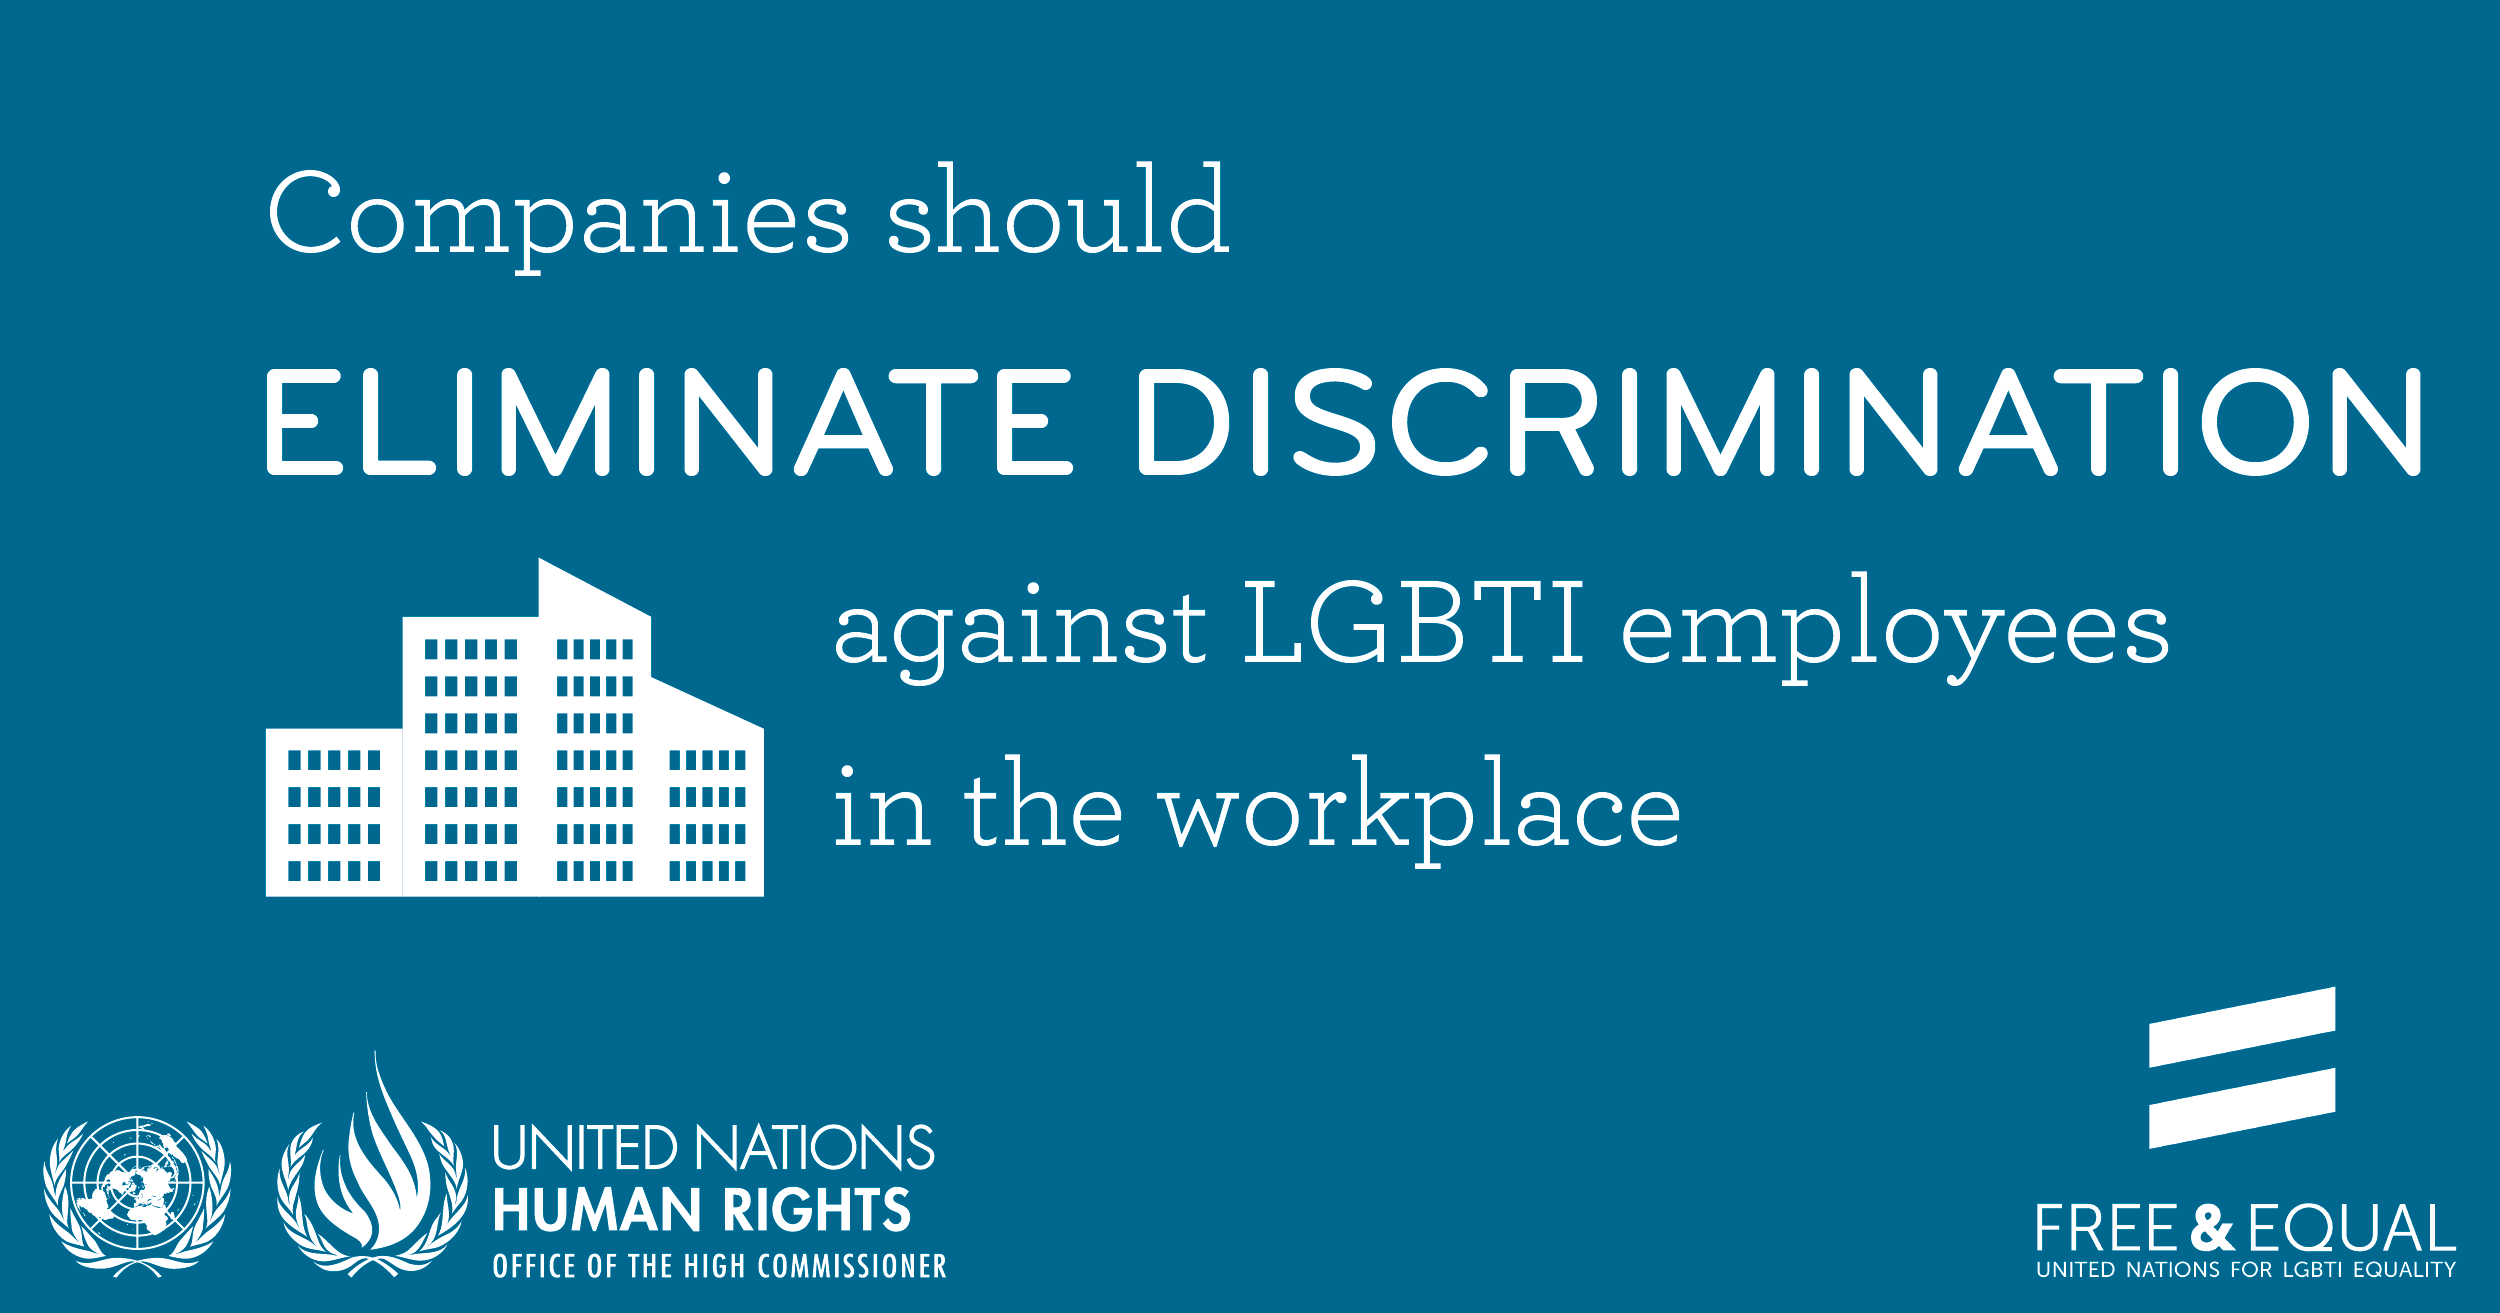 Companies should eliminate discrimination against LGBTI employees in the workplace.